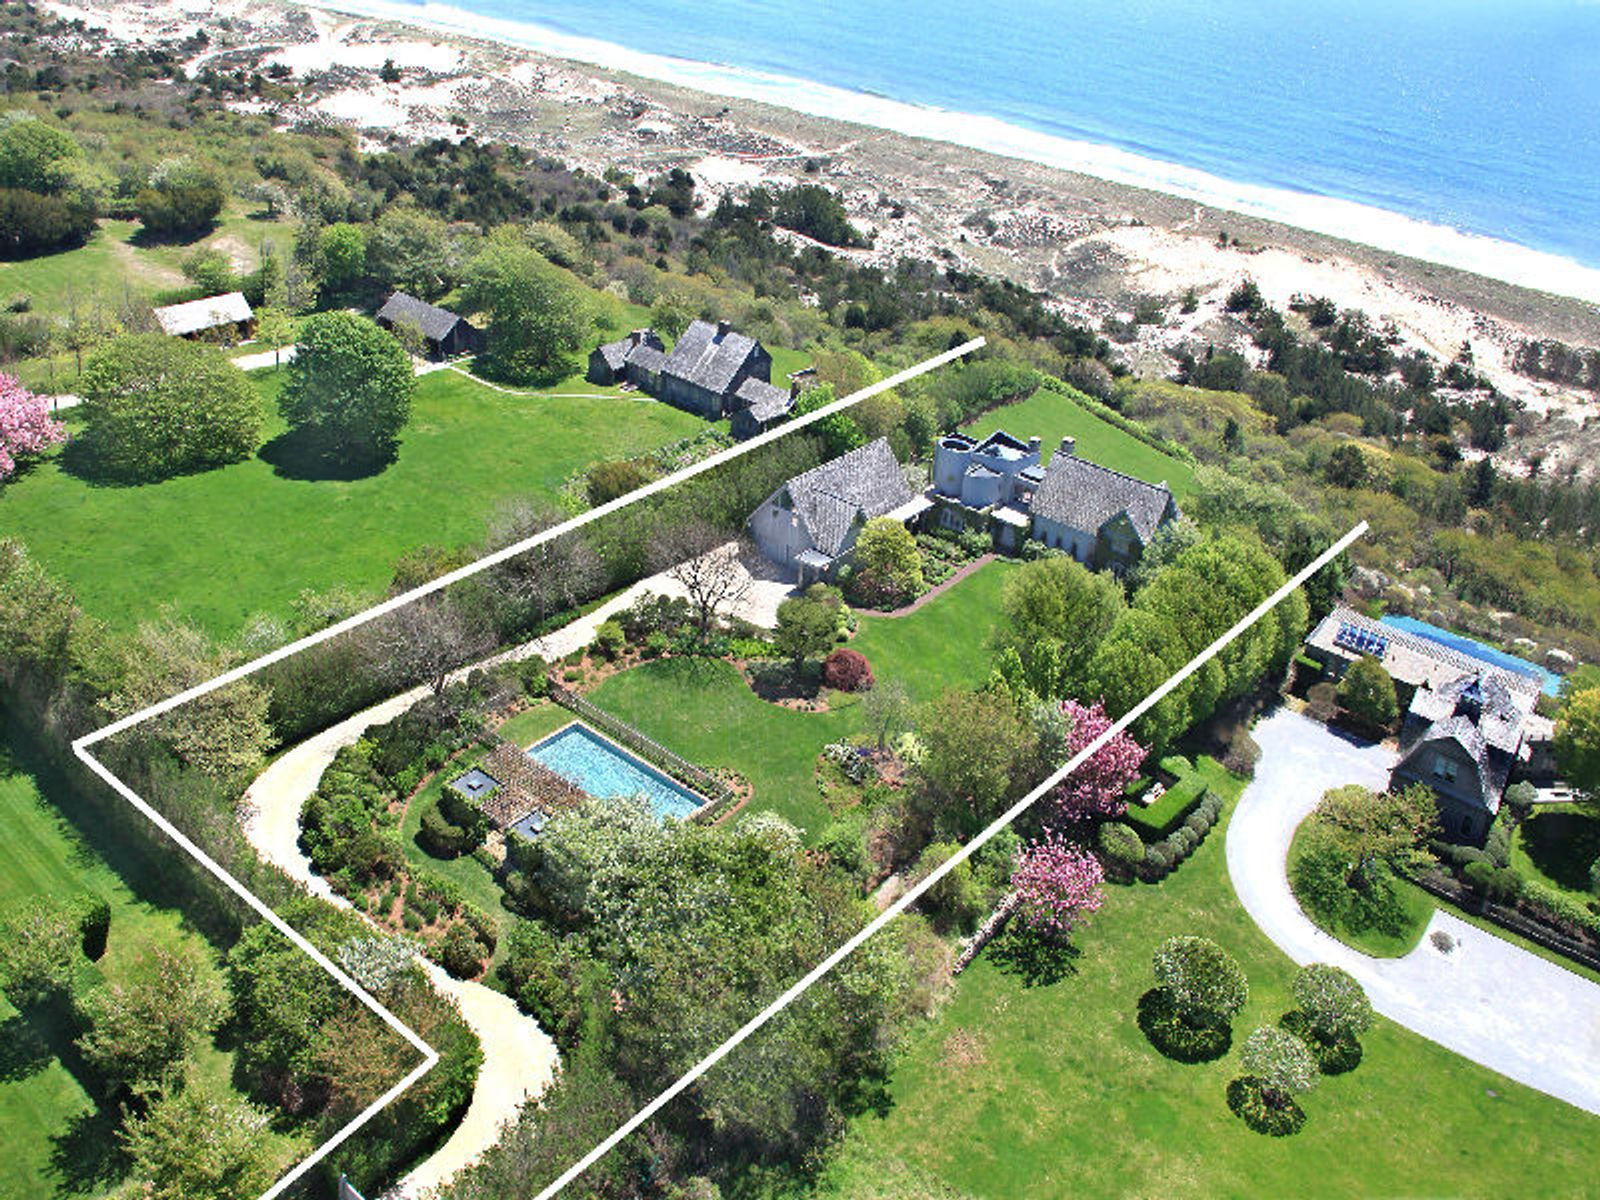 Oceanfront, East Hampton NY Single Family Home - Hamptons Real Estate